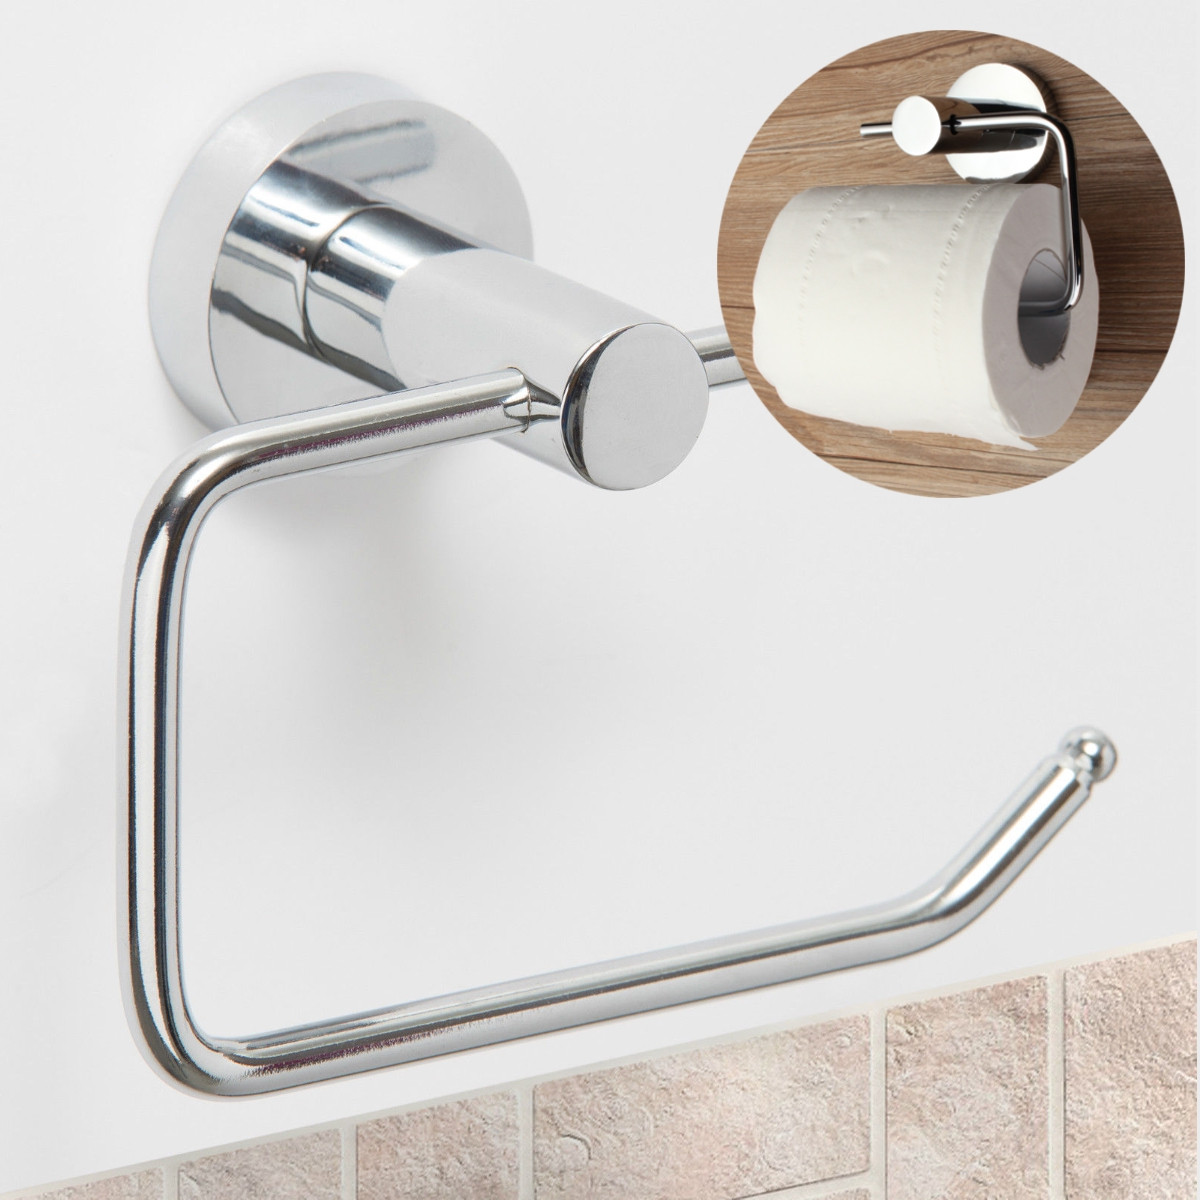 Toilet Paper Holder Storage Stainless Steel Bathroom Kitchen Paper Towel  Dispenser Tissue Roll Hanger Wall Mount